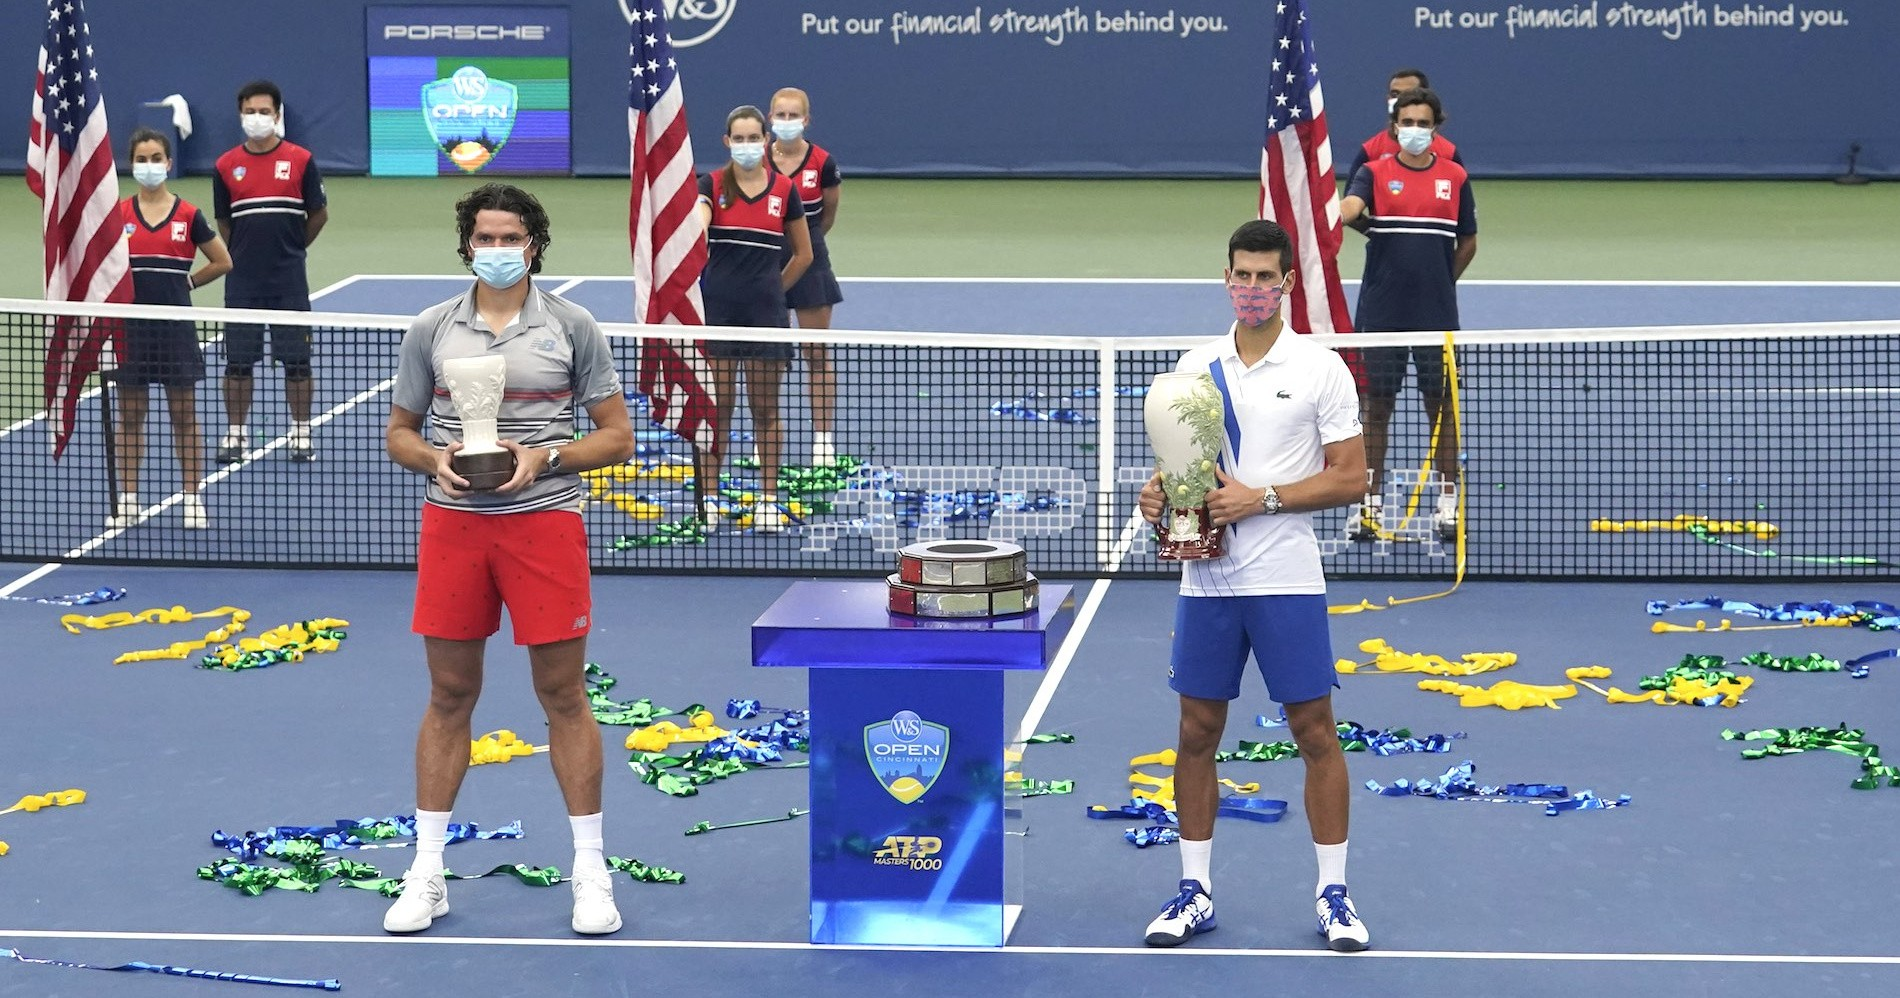 Milos Raonic and Novak Djokovic after 2020 Southern and Western final, New York, August 2020